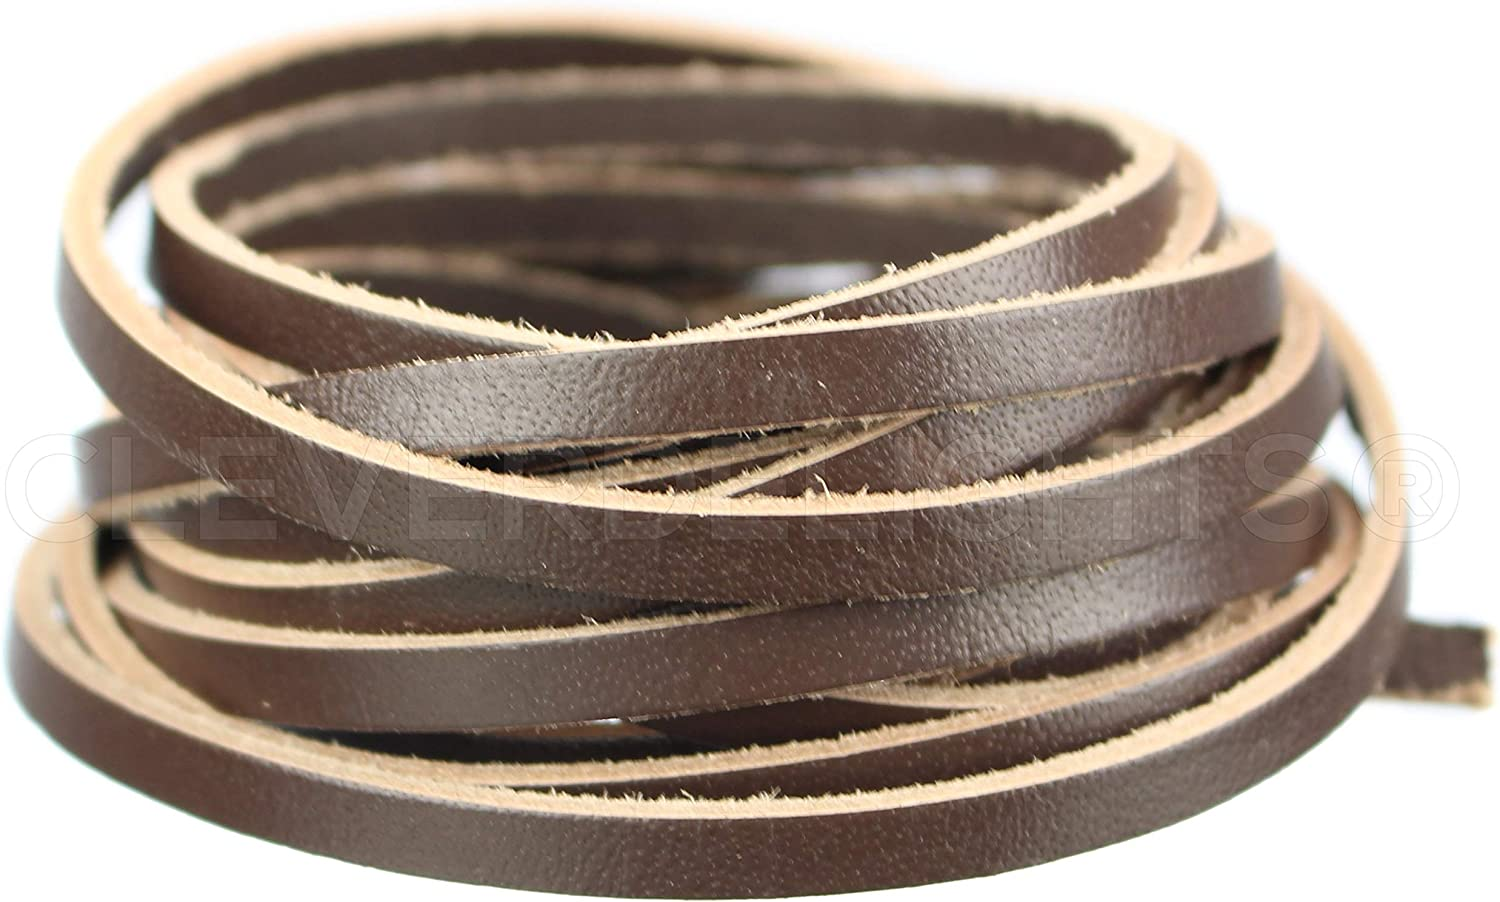 75 Feet CleverDelights 5//32 Genuine Leather Flat Cord Dark Brown 4mm Cowhide Leather Strap